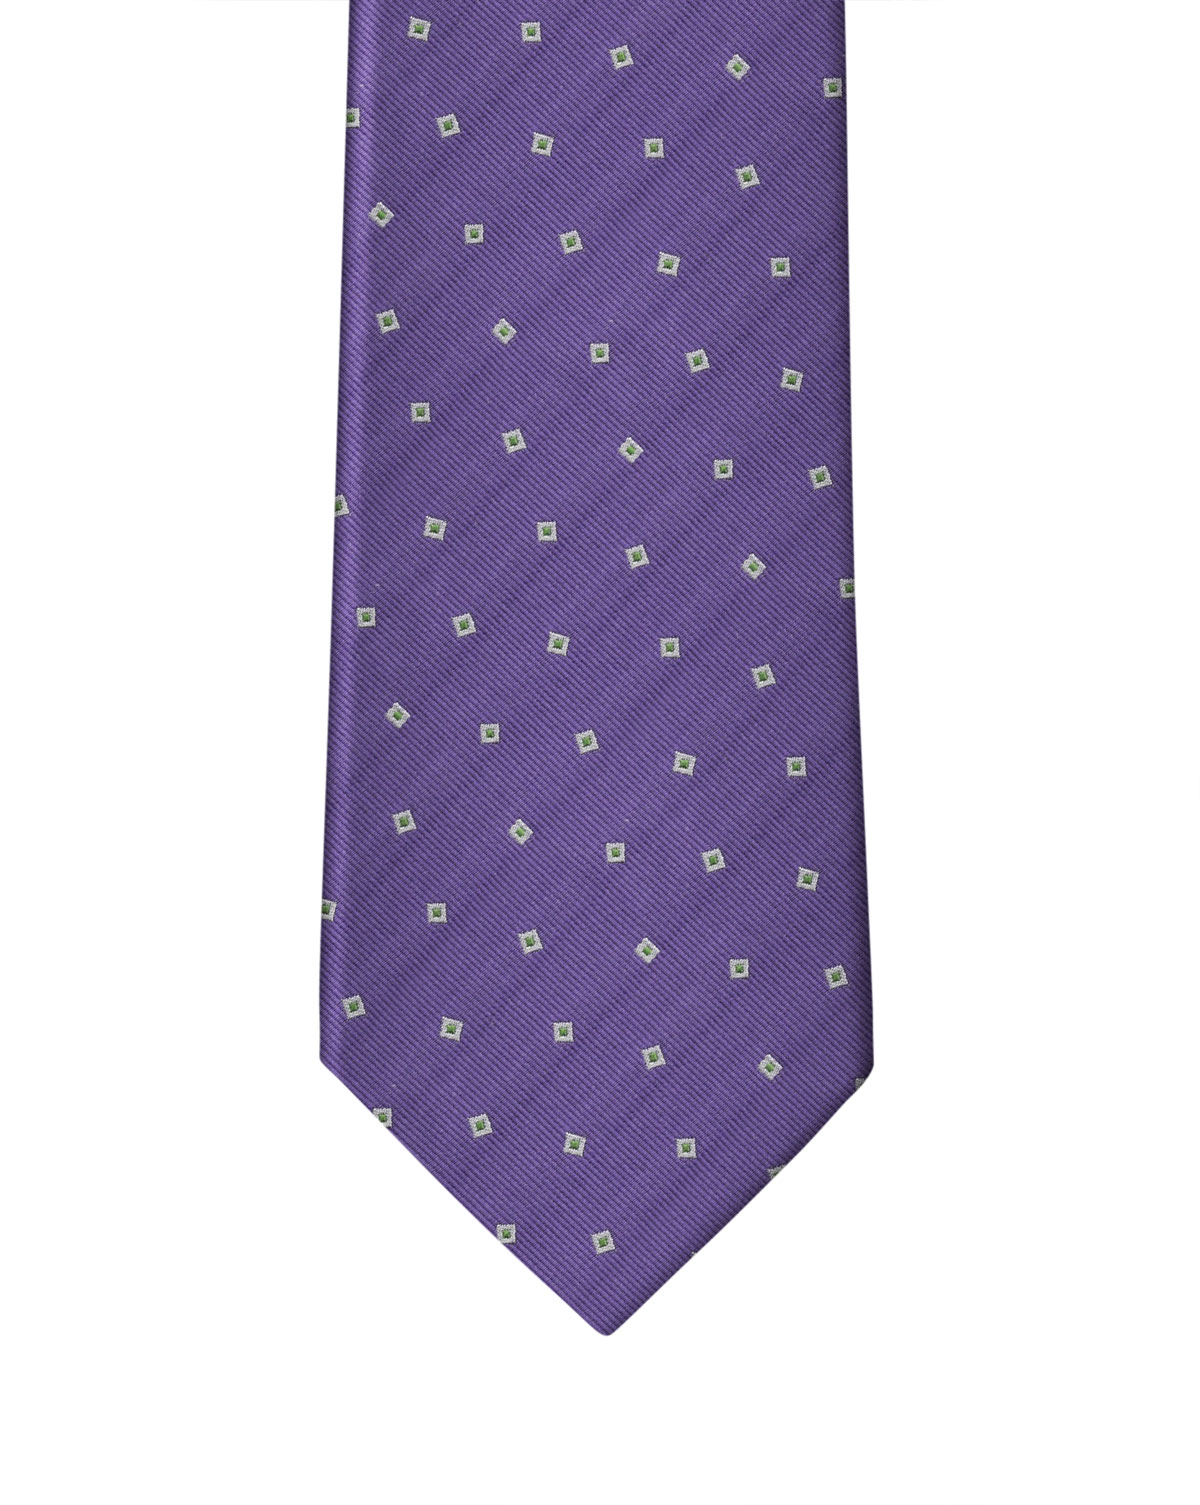 Purple Small Square Neat Necktie